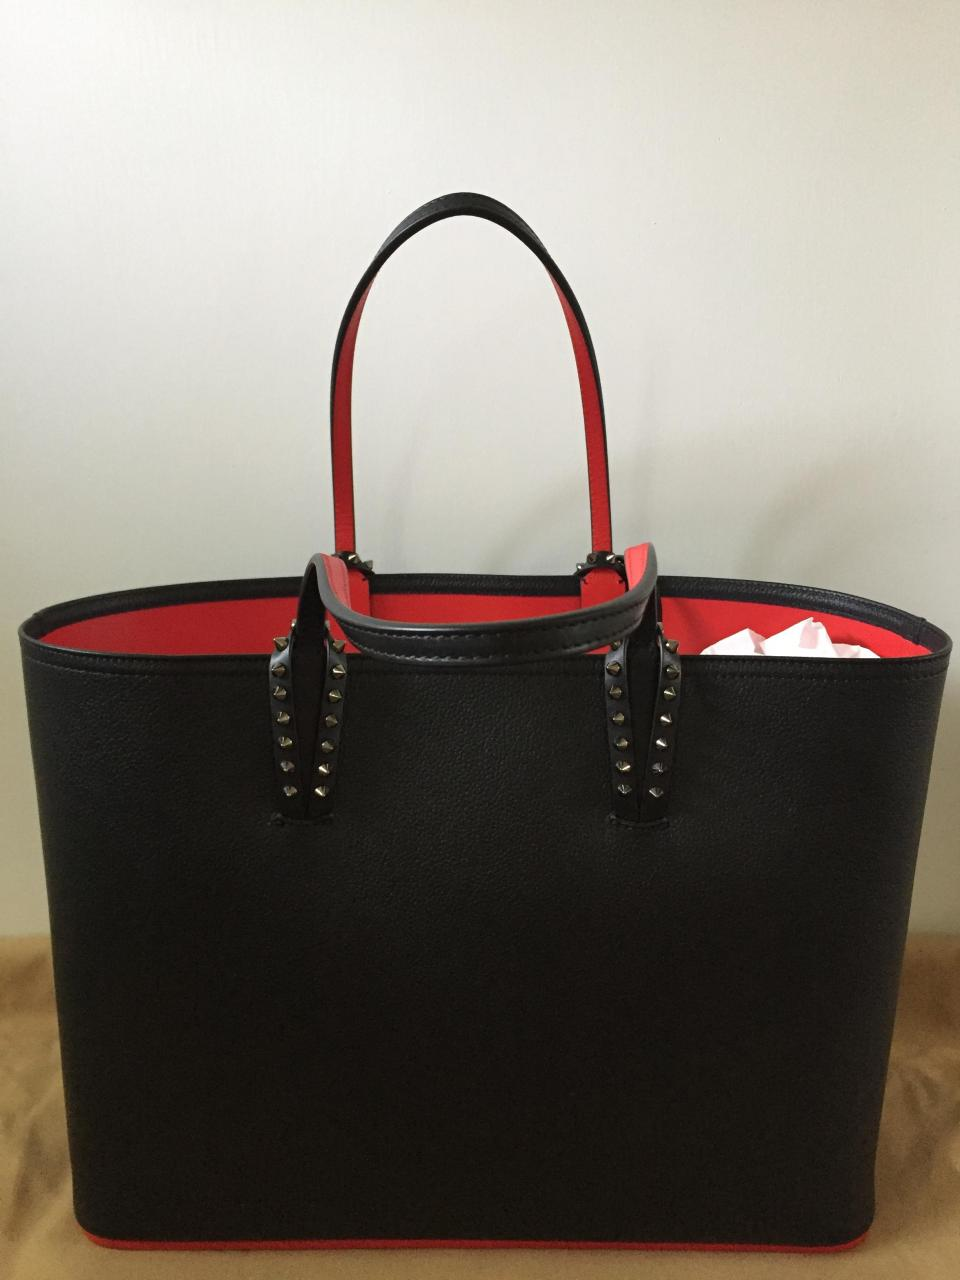 e8fe8682ddb Handbag Replica Wholesale Center Christian Louboutin - Cabata Black ...